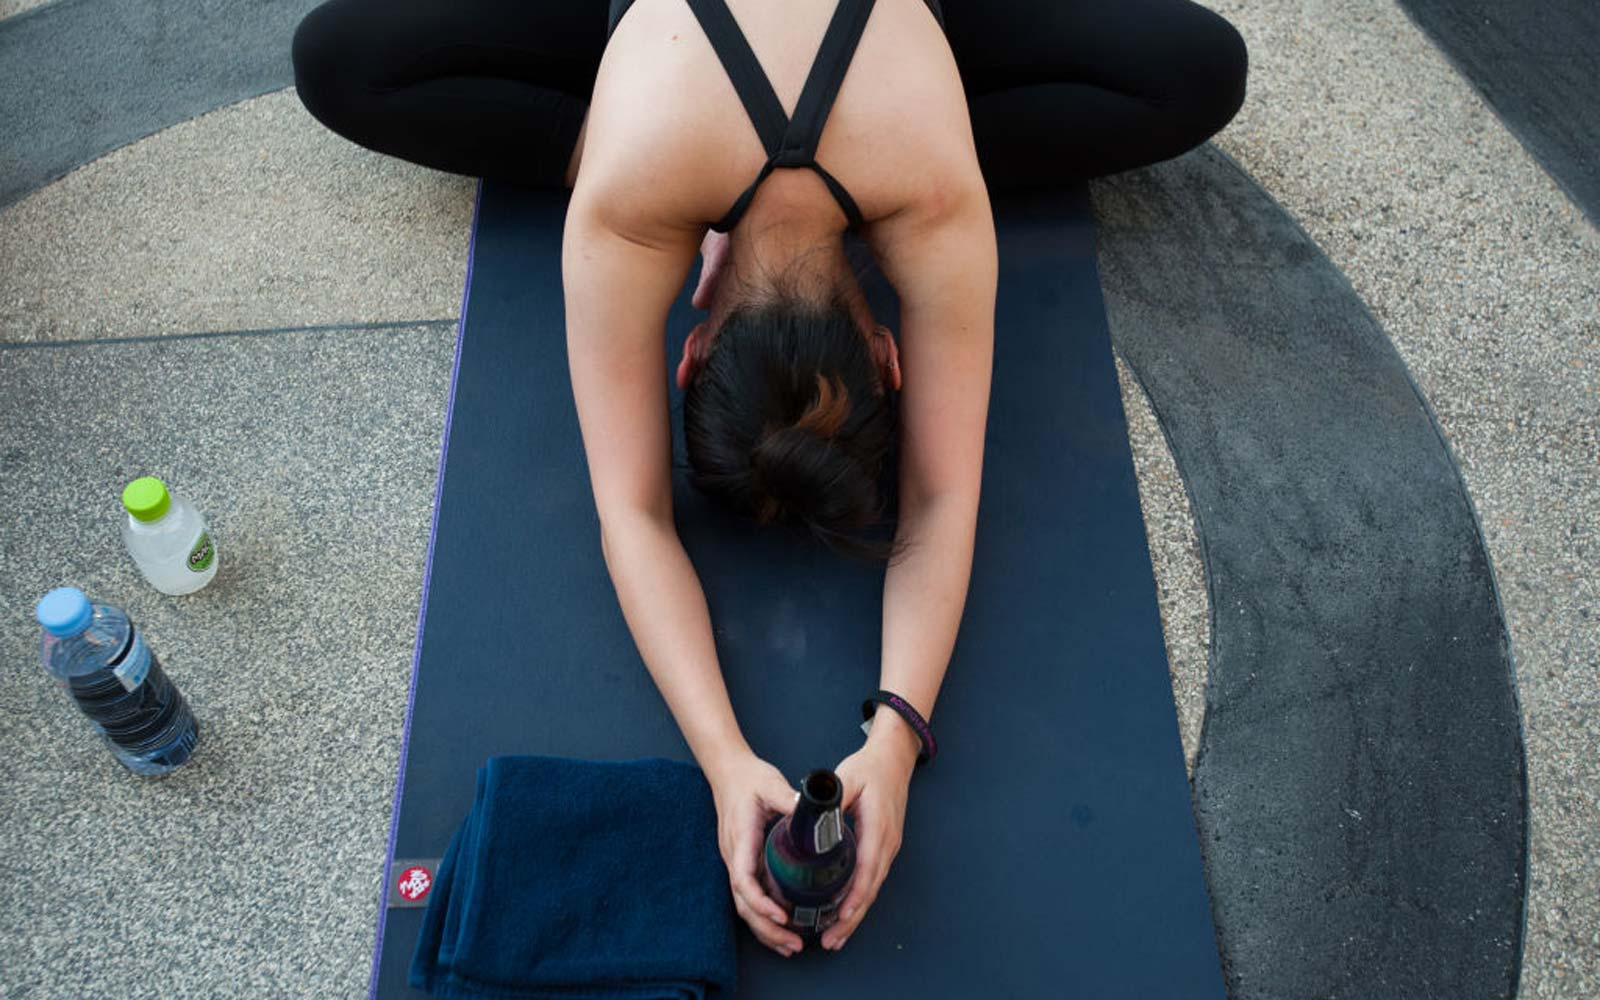 Participants in a beer yoga course perform a yoga exercise with a beer bottle